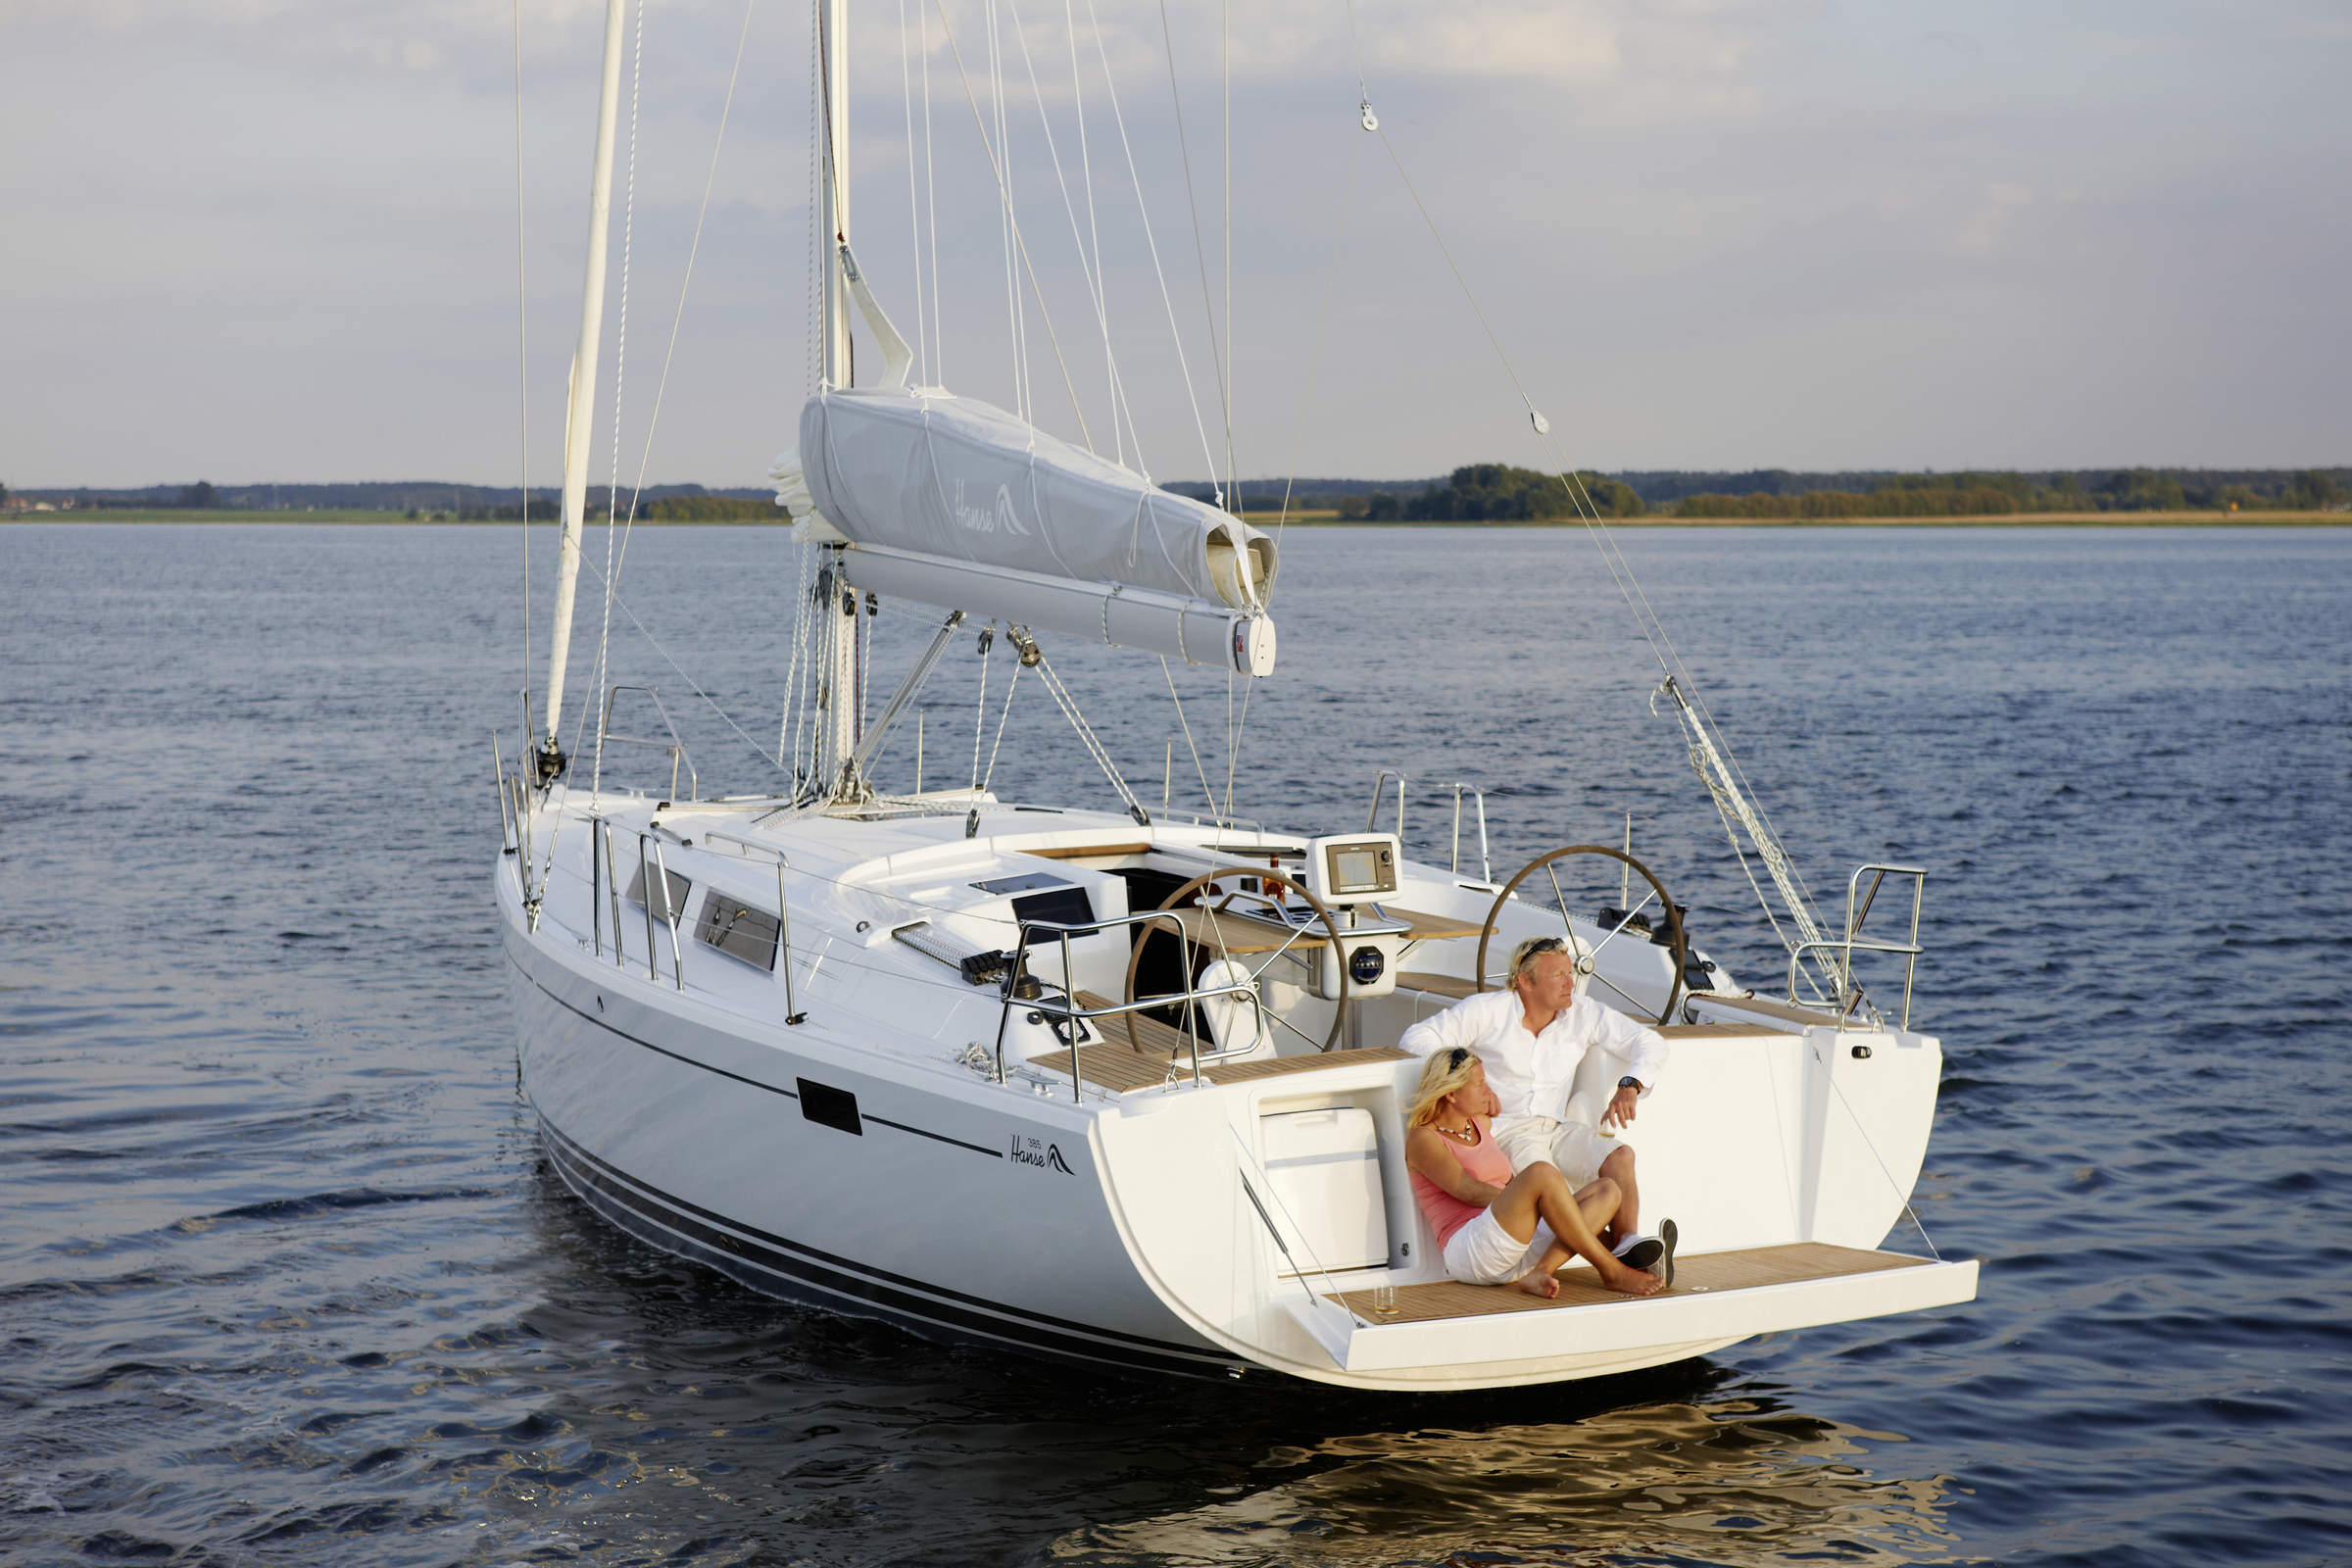 Hanse 385 sailboat for sale